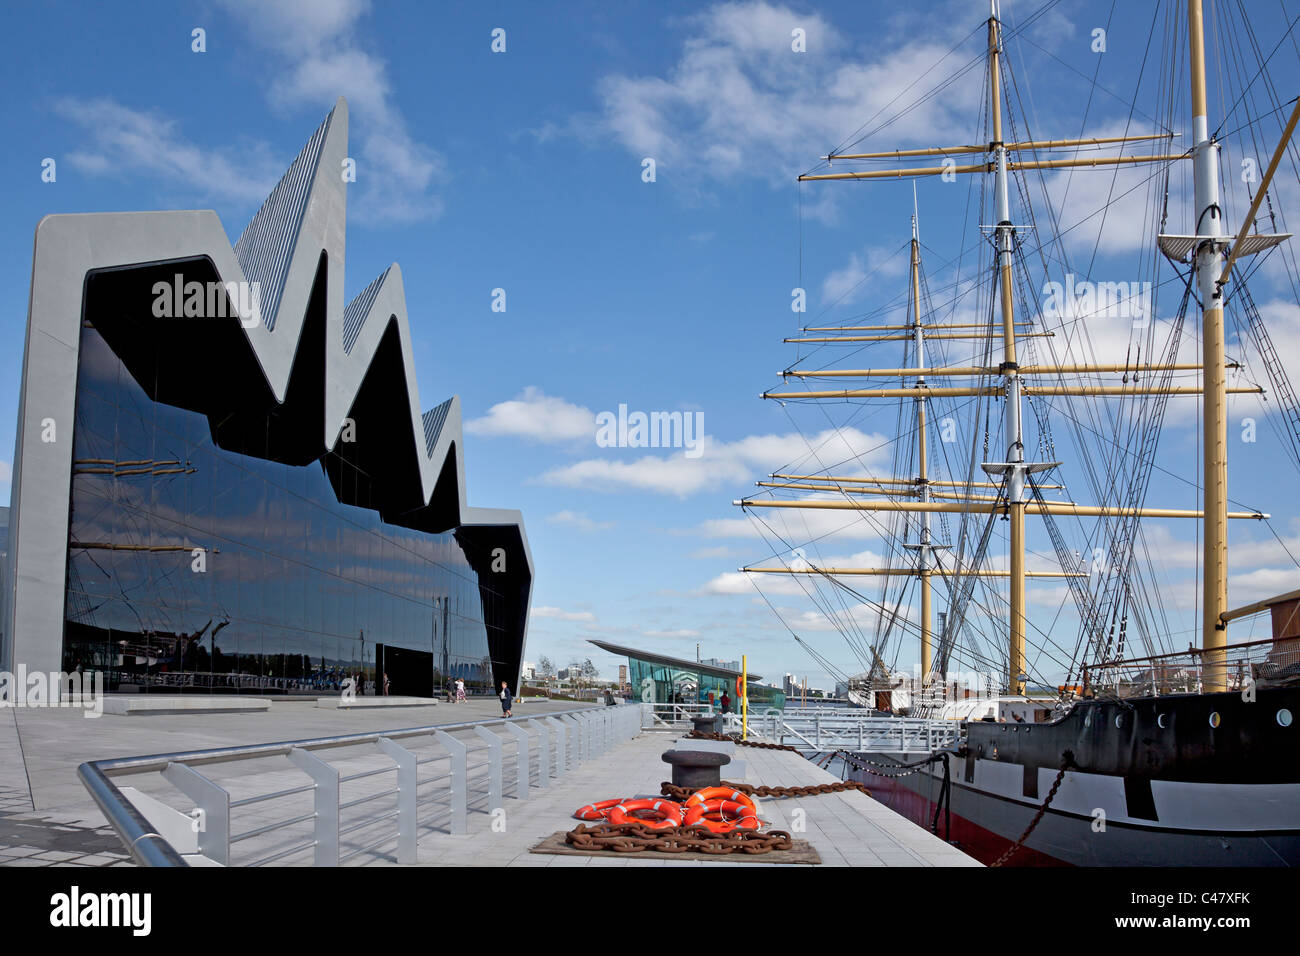 The Riverside Museum (Transport Museum) exterior and the Tall Ship (Glenlee) at Pointhouse Quay in Glasgow Harbour. - Stock Image